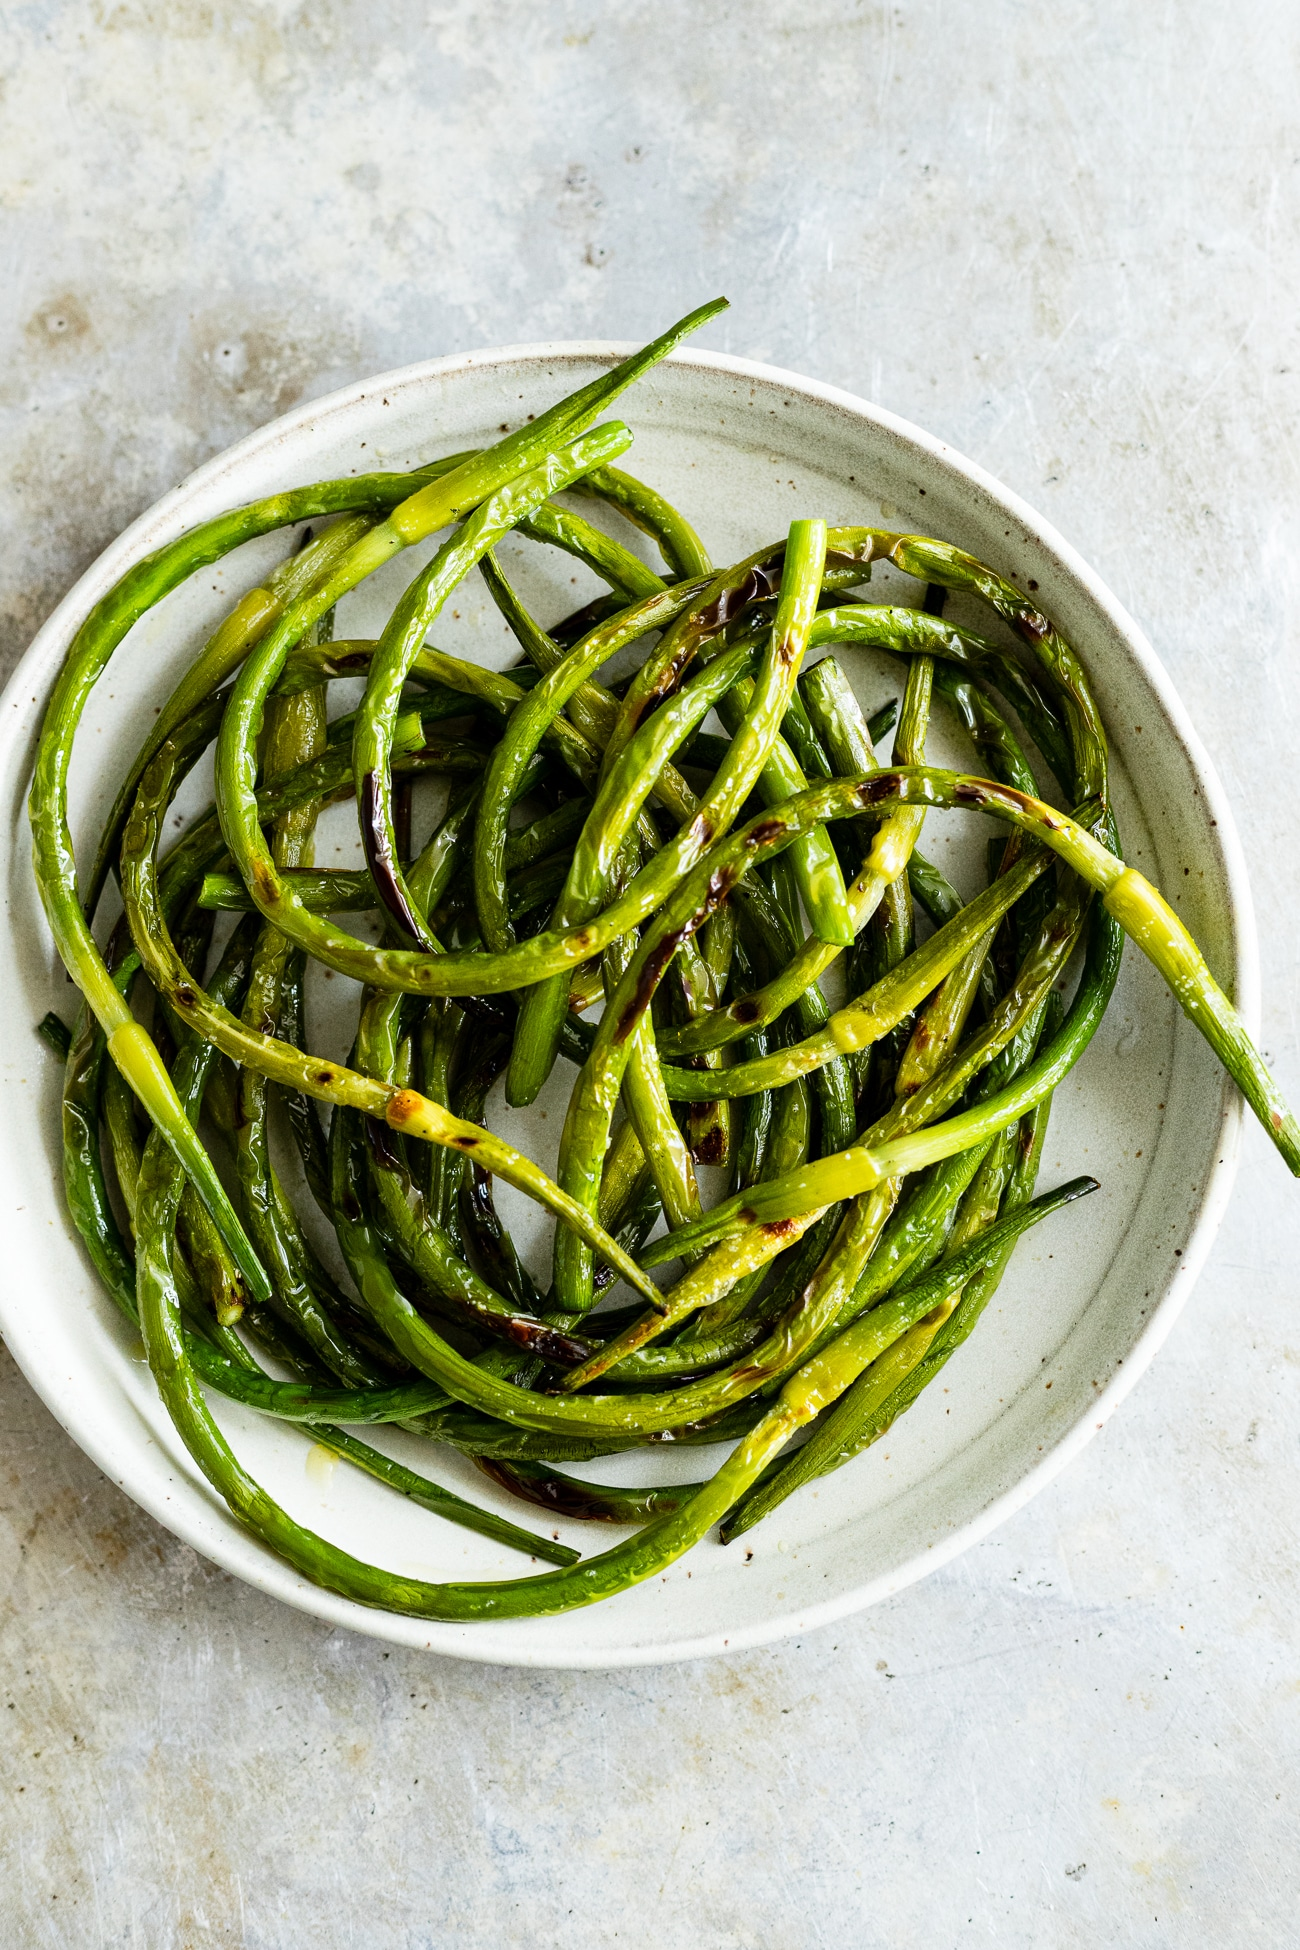 Simple Grilled Garlic Scapes with Salt + Pepper | Simple grilled garlic scapes with olive oil and seasoned with sea salt and pepper. An easy, whole garlic scape recipe. Grilled garlic scapes make a flavorful side dish. #garlicscapes #grilledgarlicscapes